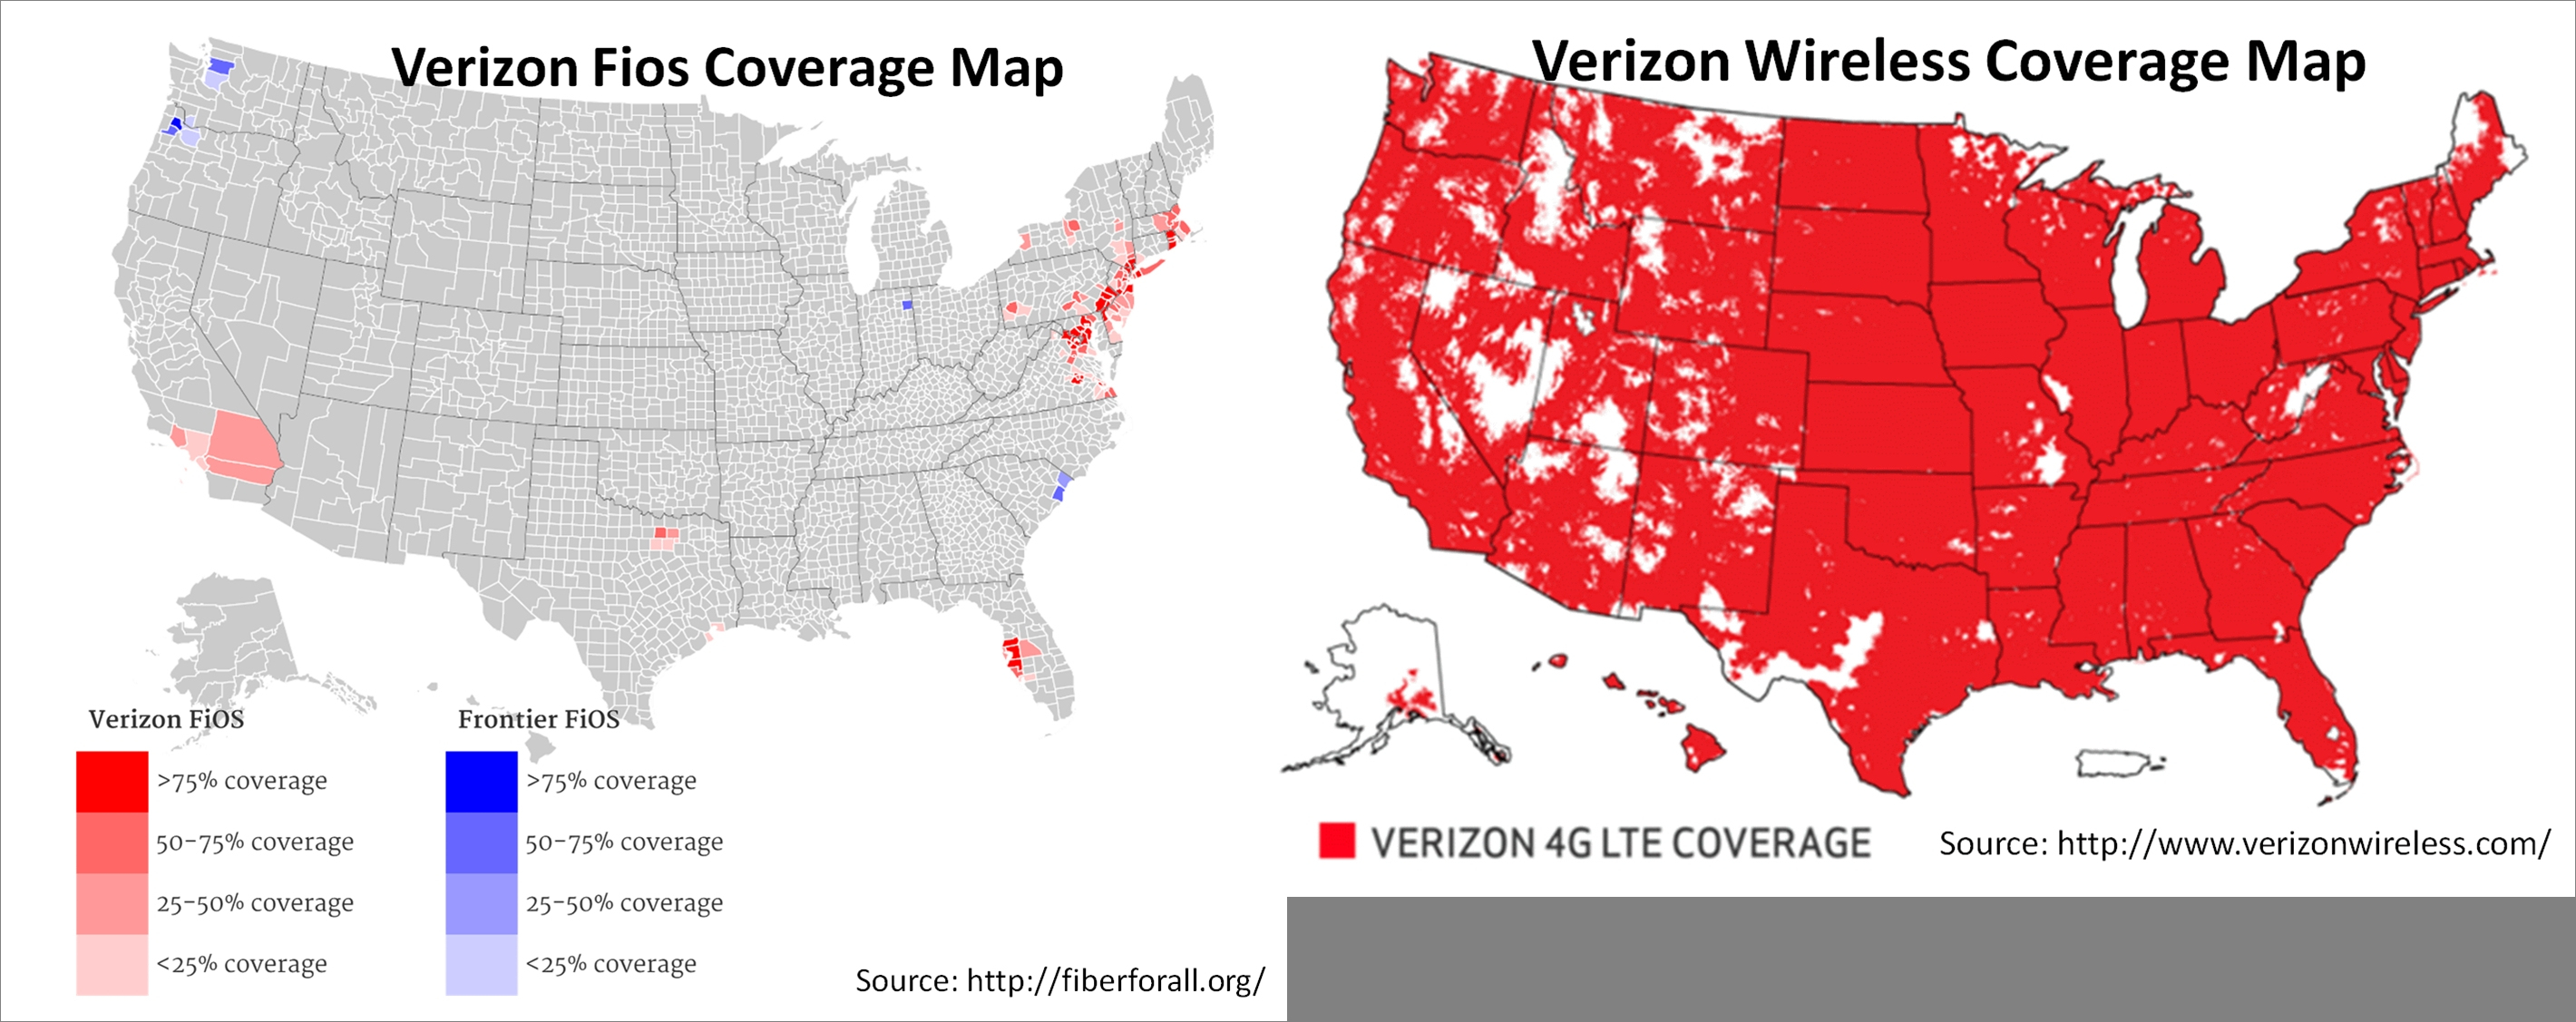 Hsi Frontier Fios Availability Map Nice Frontier Fios Availability - Fios Availability Map California